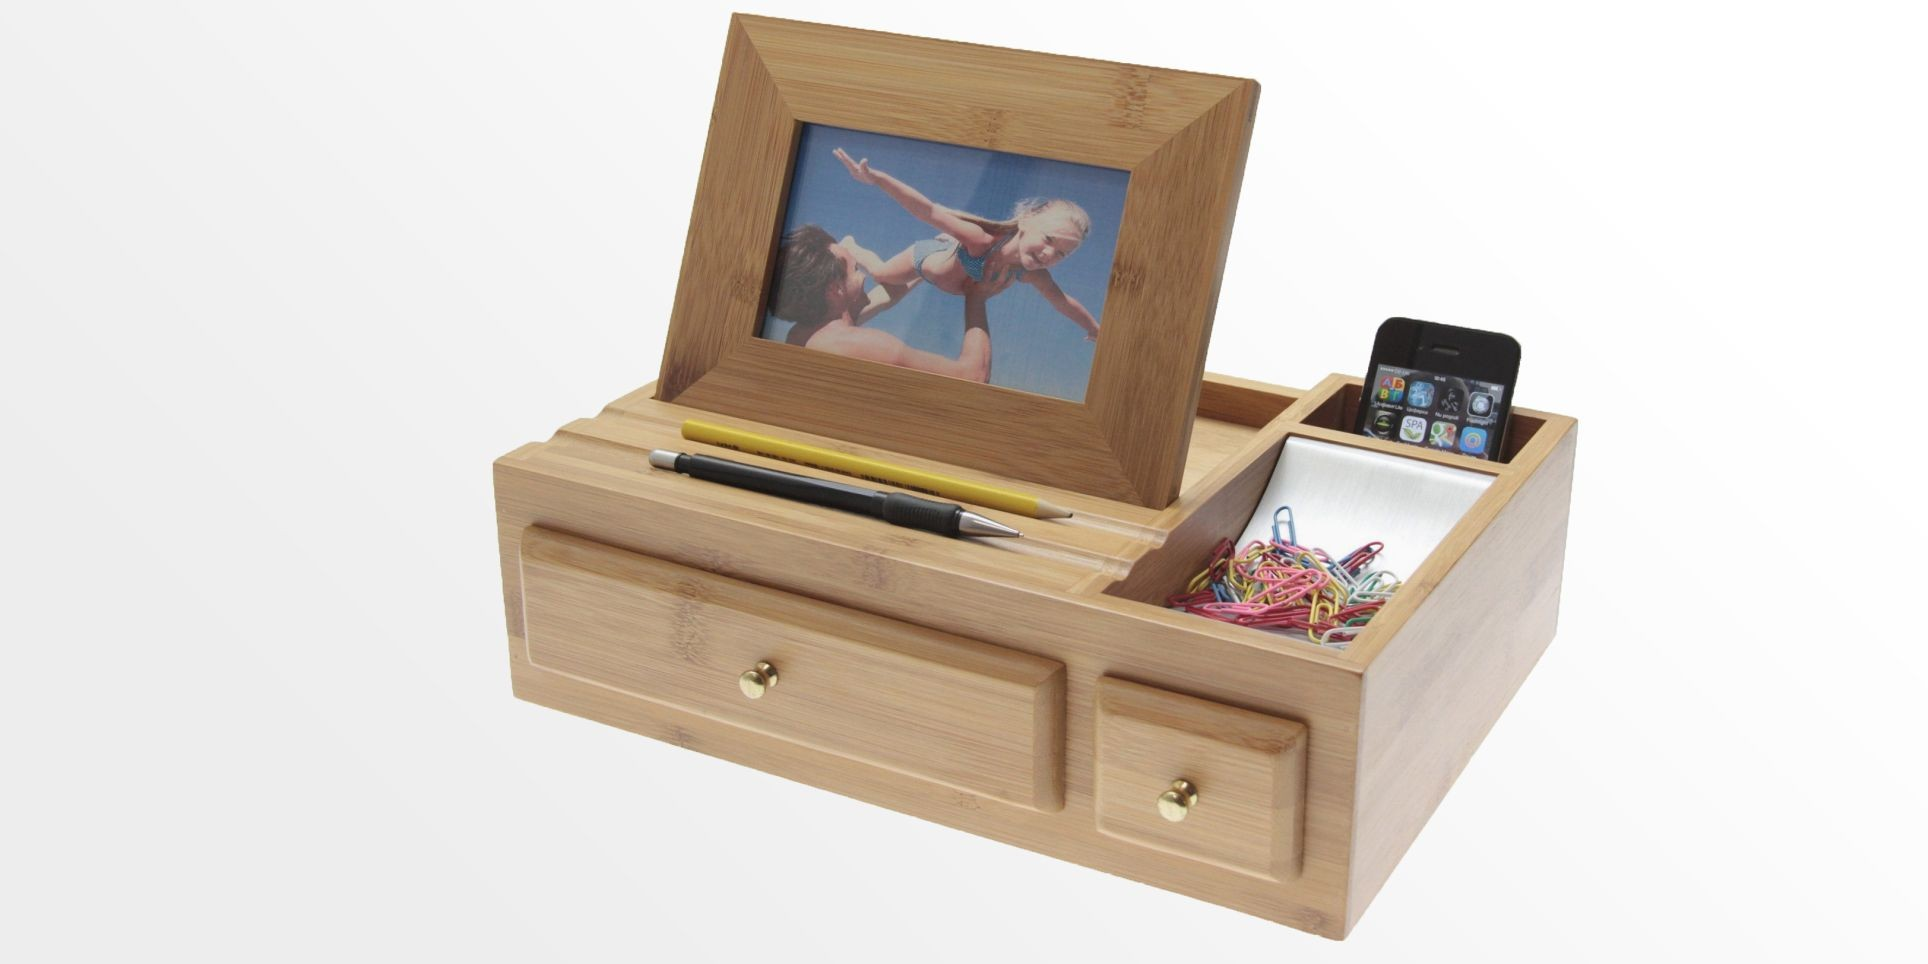 Desk Organiser With Photo Frame Bamboo Stationary Box